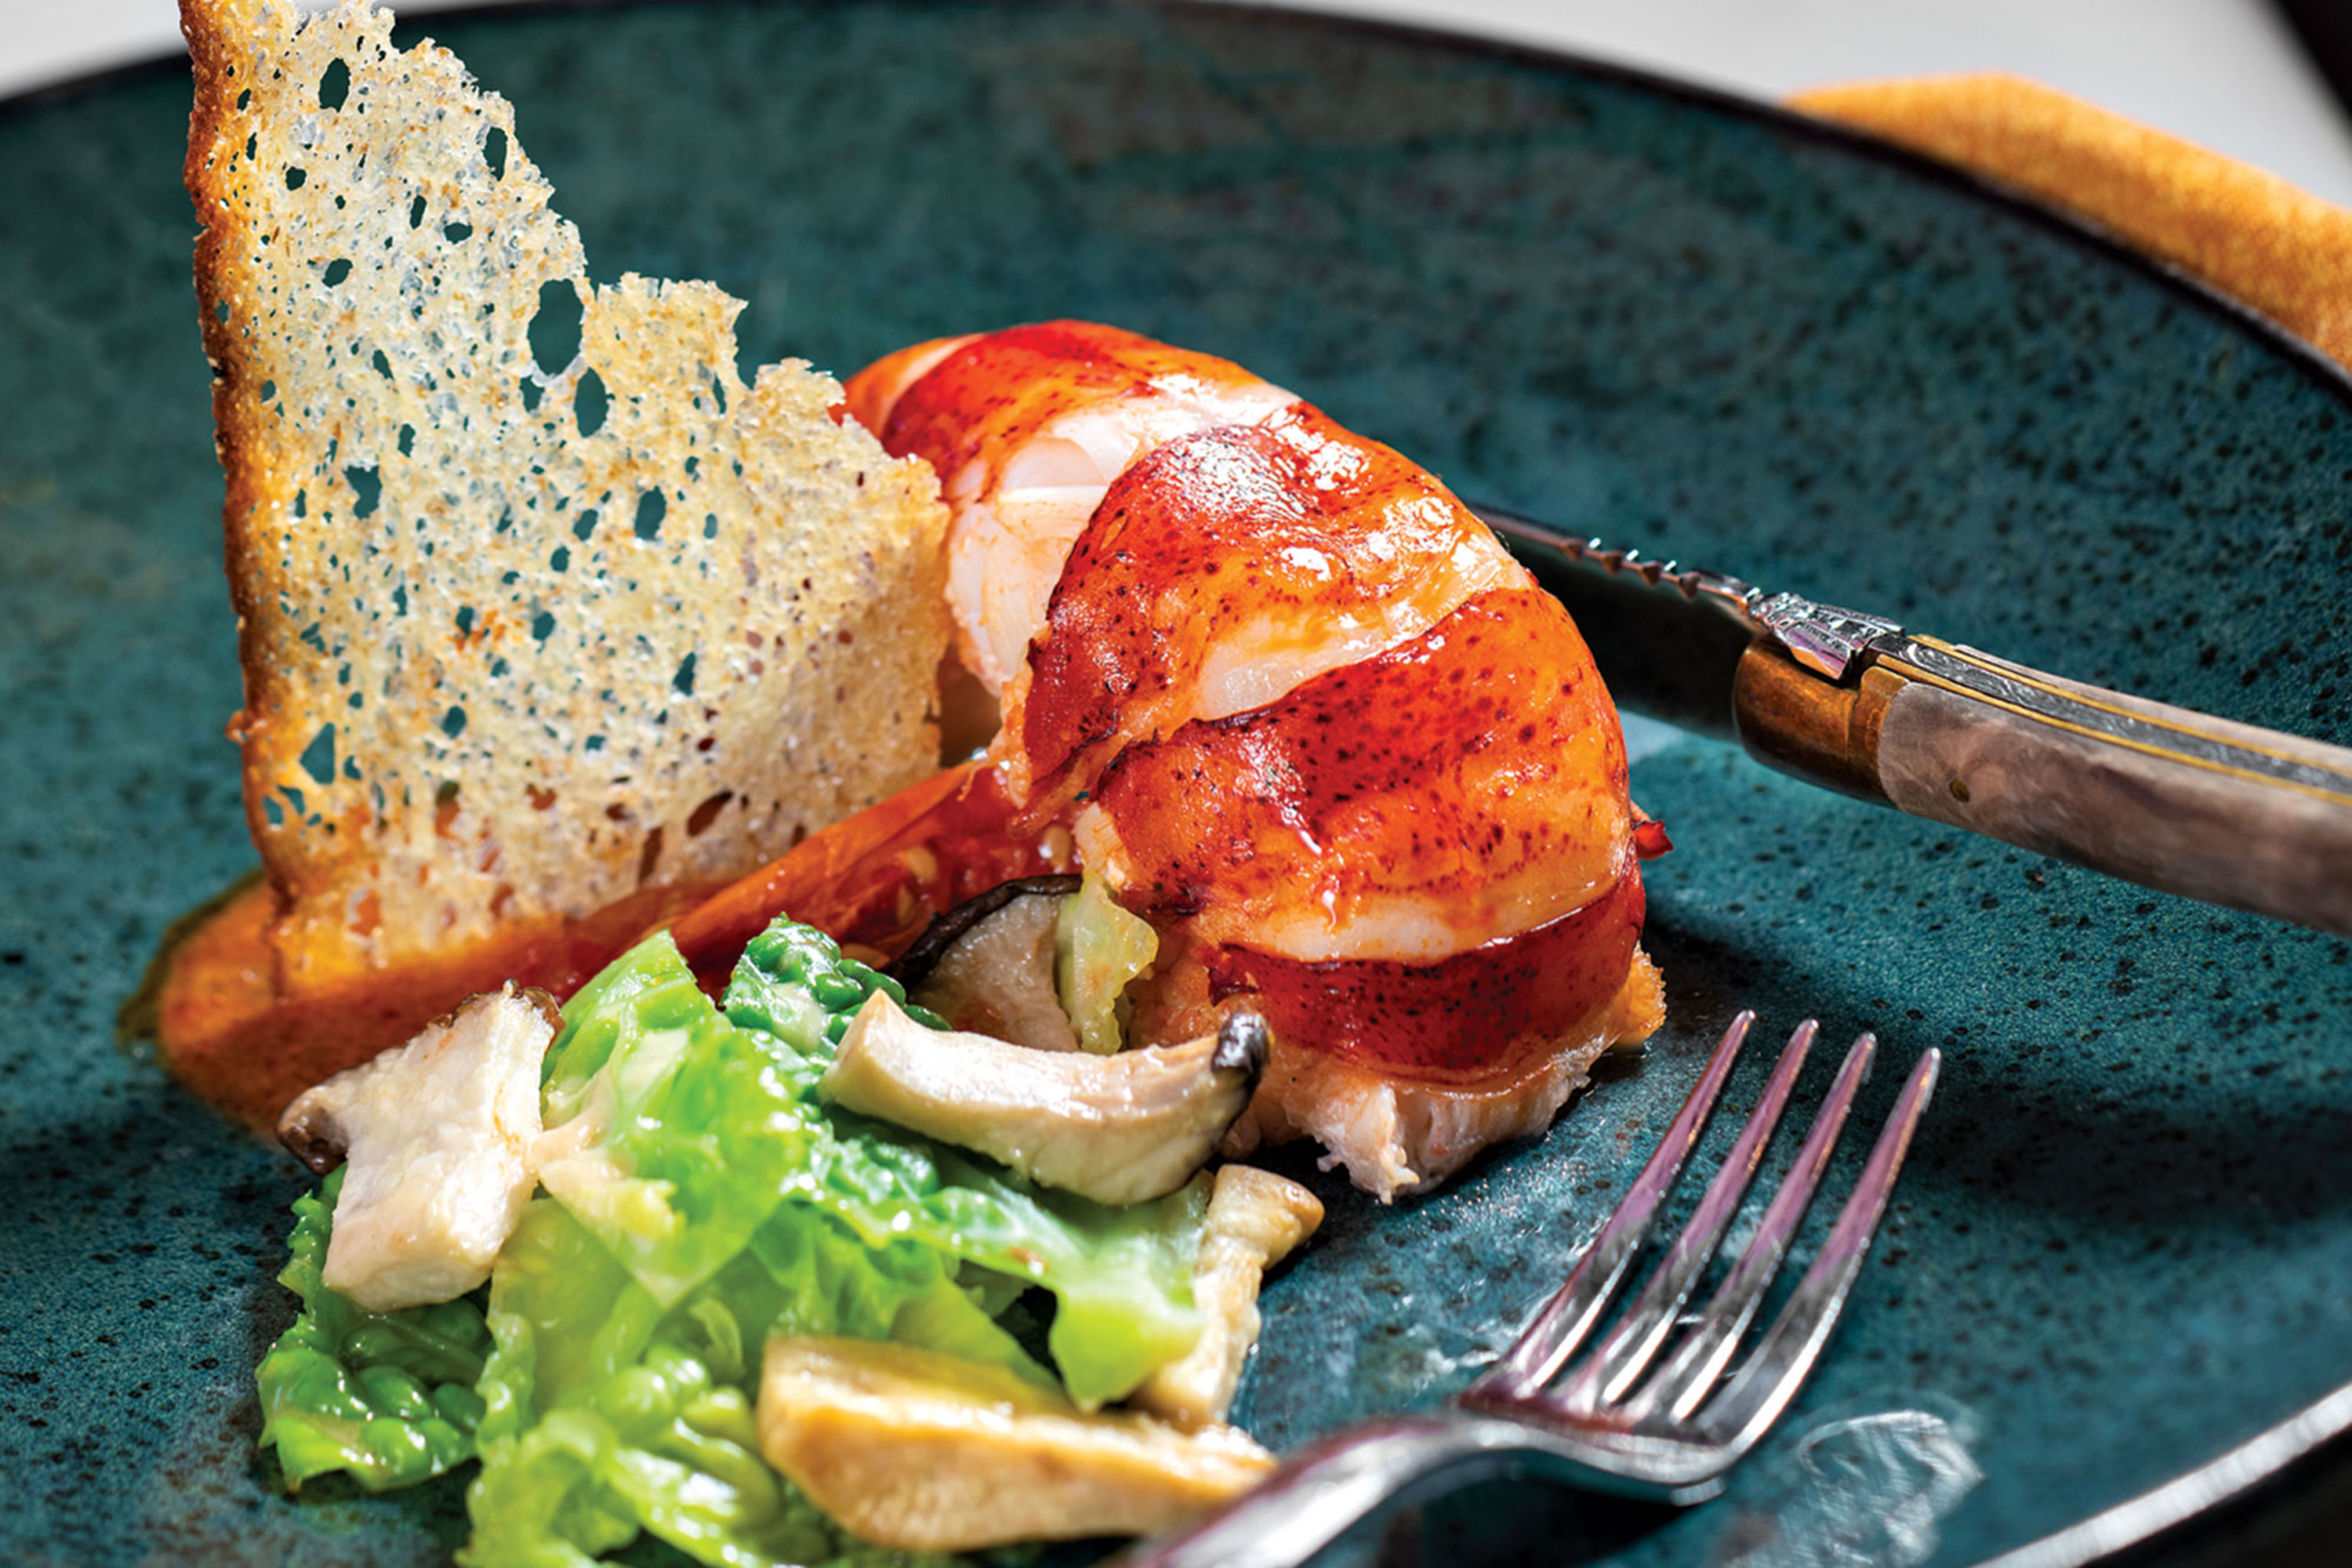 Butter-poached lobster tail